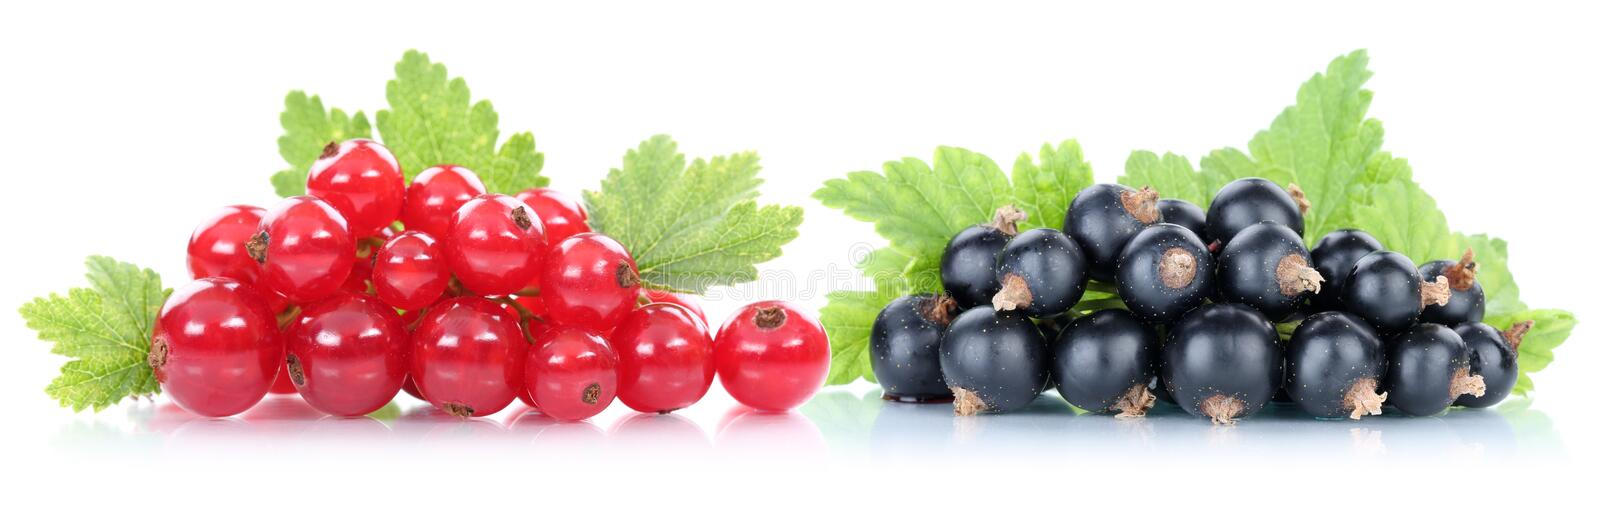 Red and black currant currants berries fruits royalty free stock photo